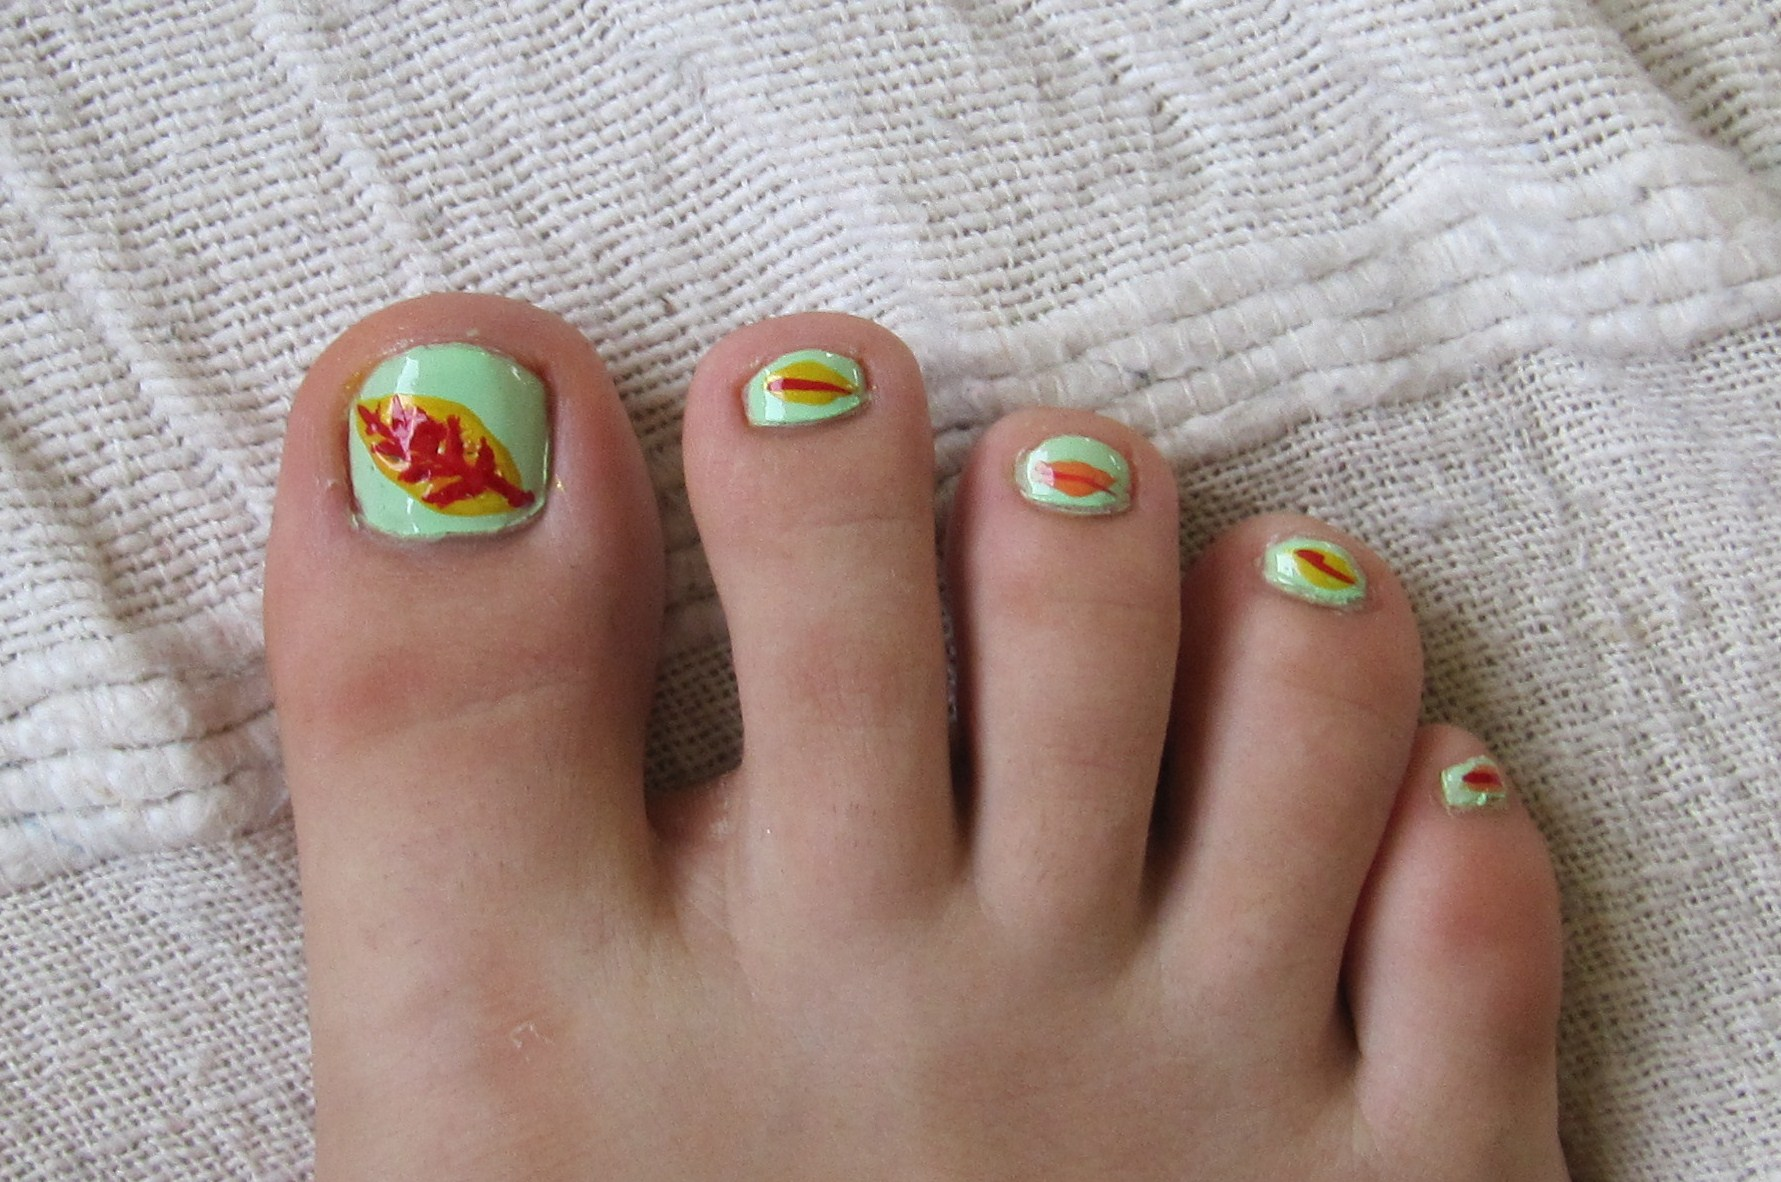 13 Toe Nail Designs With Lines Images - Simple Toe Nail Designs ...